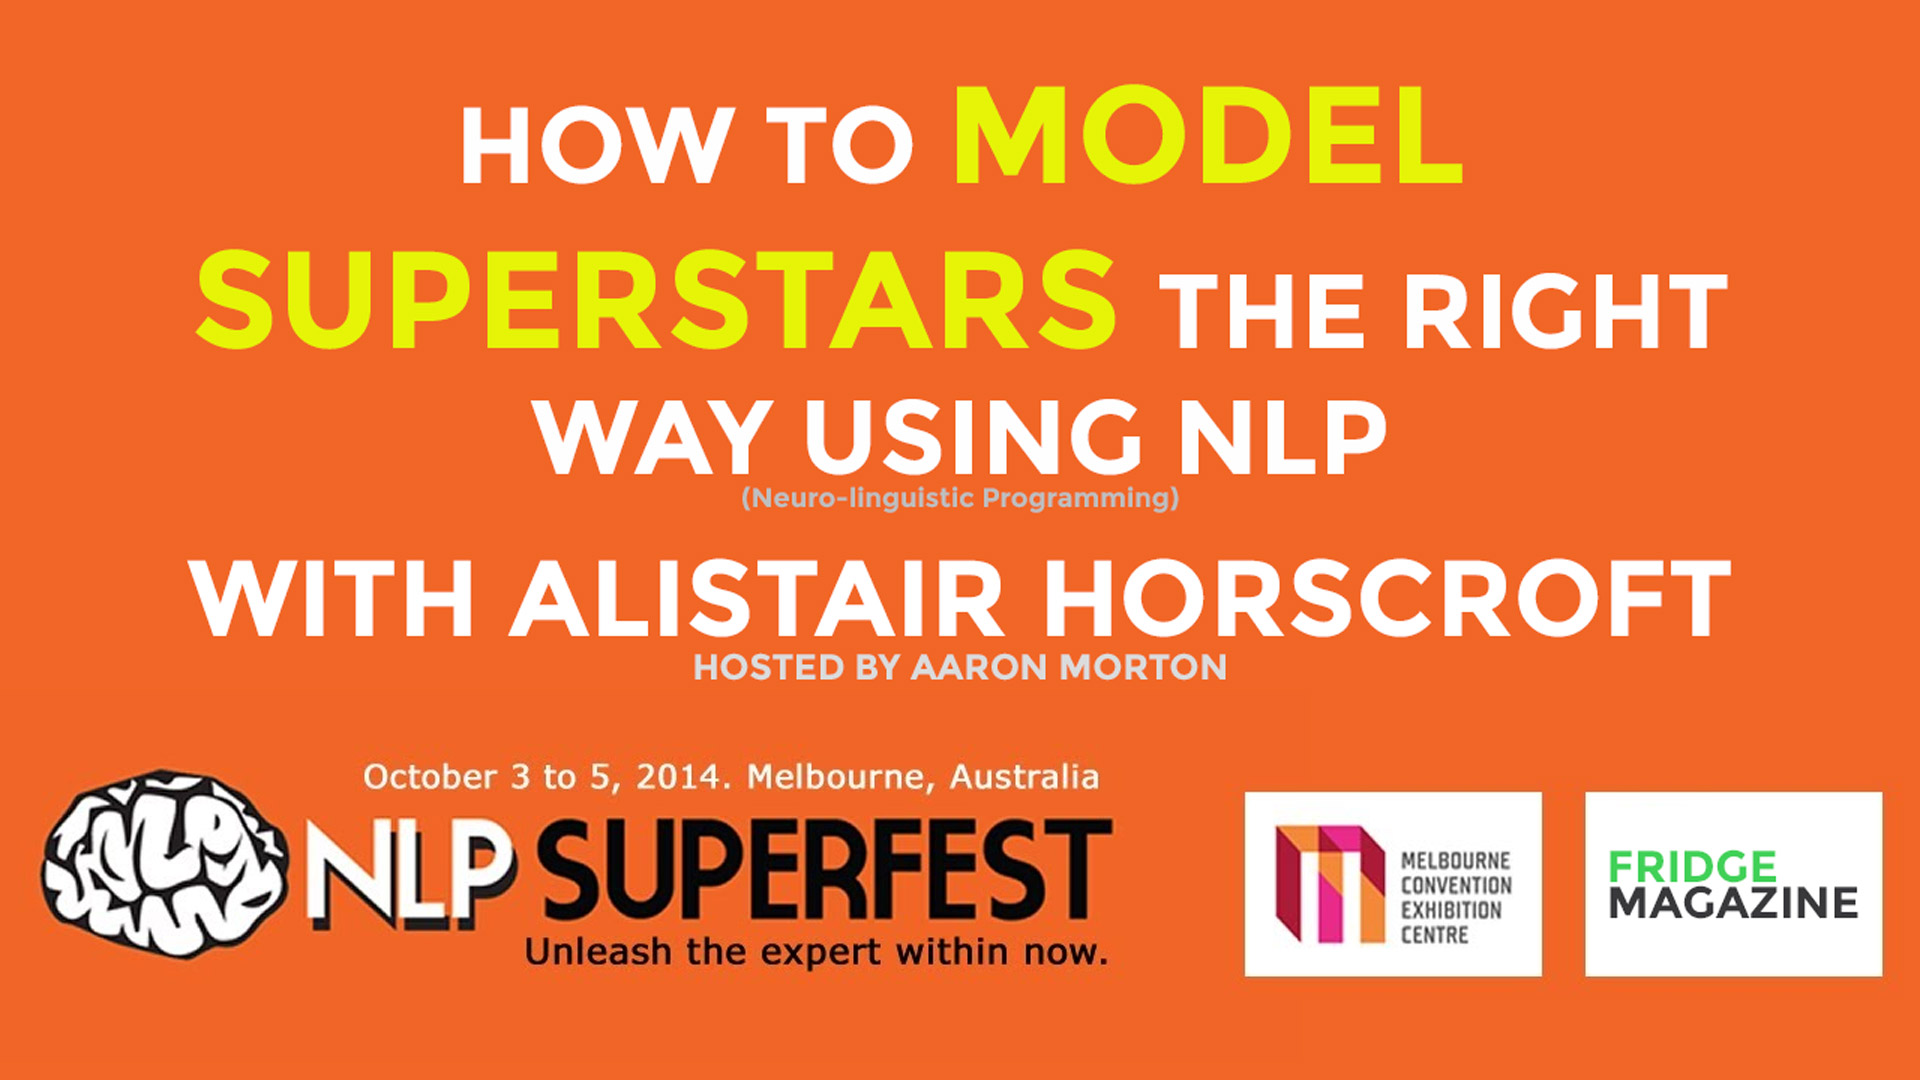 How to model superstars the right way using nlp with alistair horscroft 1920 fridge magazine - How to use the fridge in an ingenious manner ...